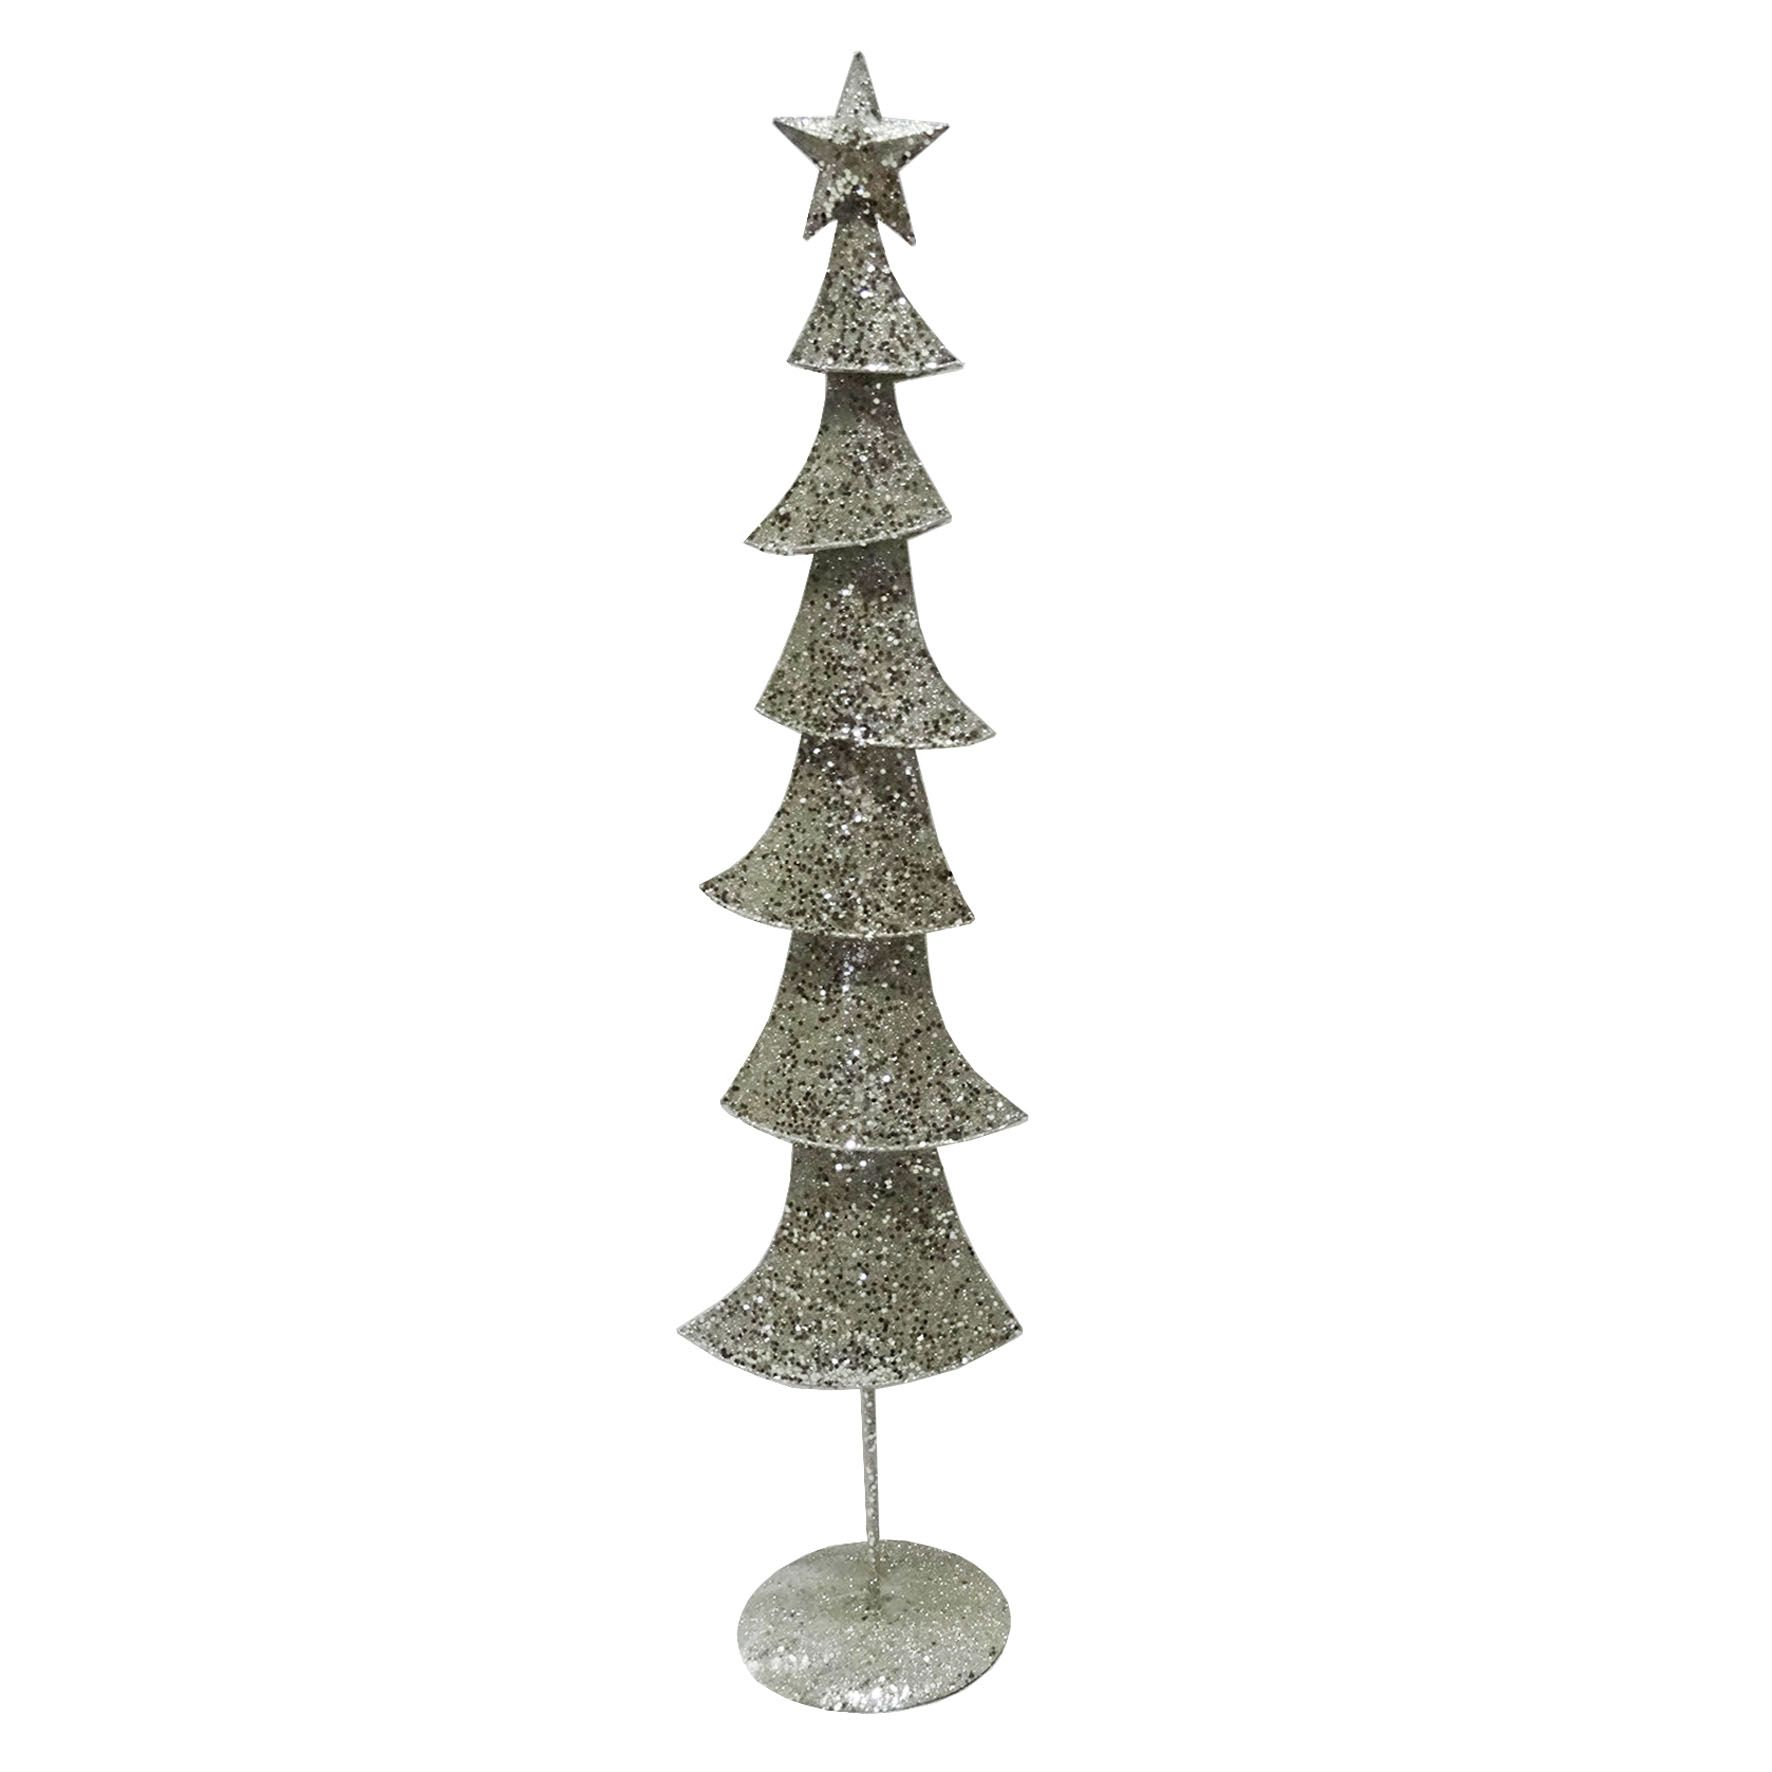 Large Champagne Silver Glittered Metal Christmas Tree